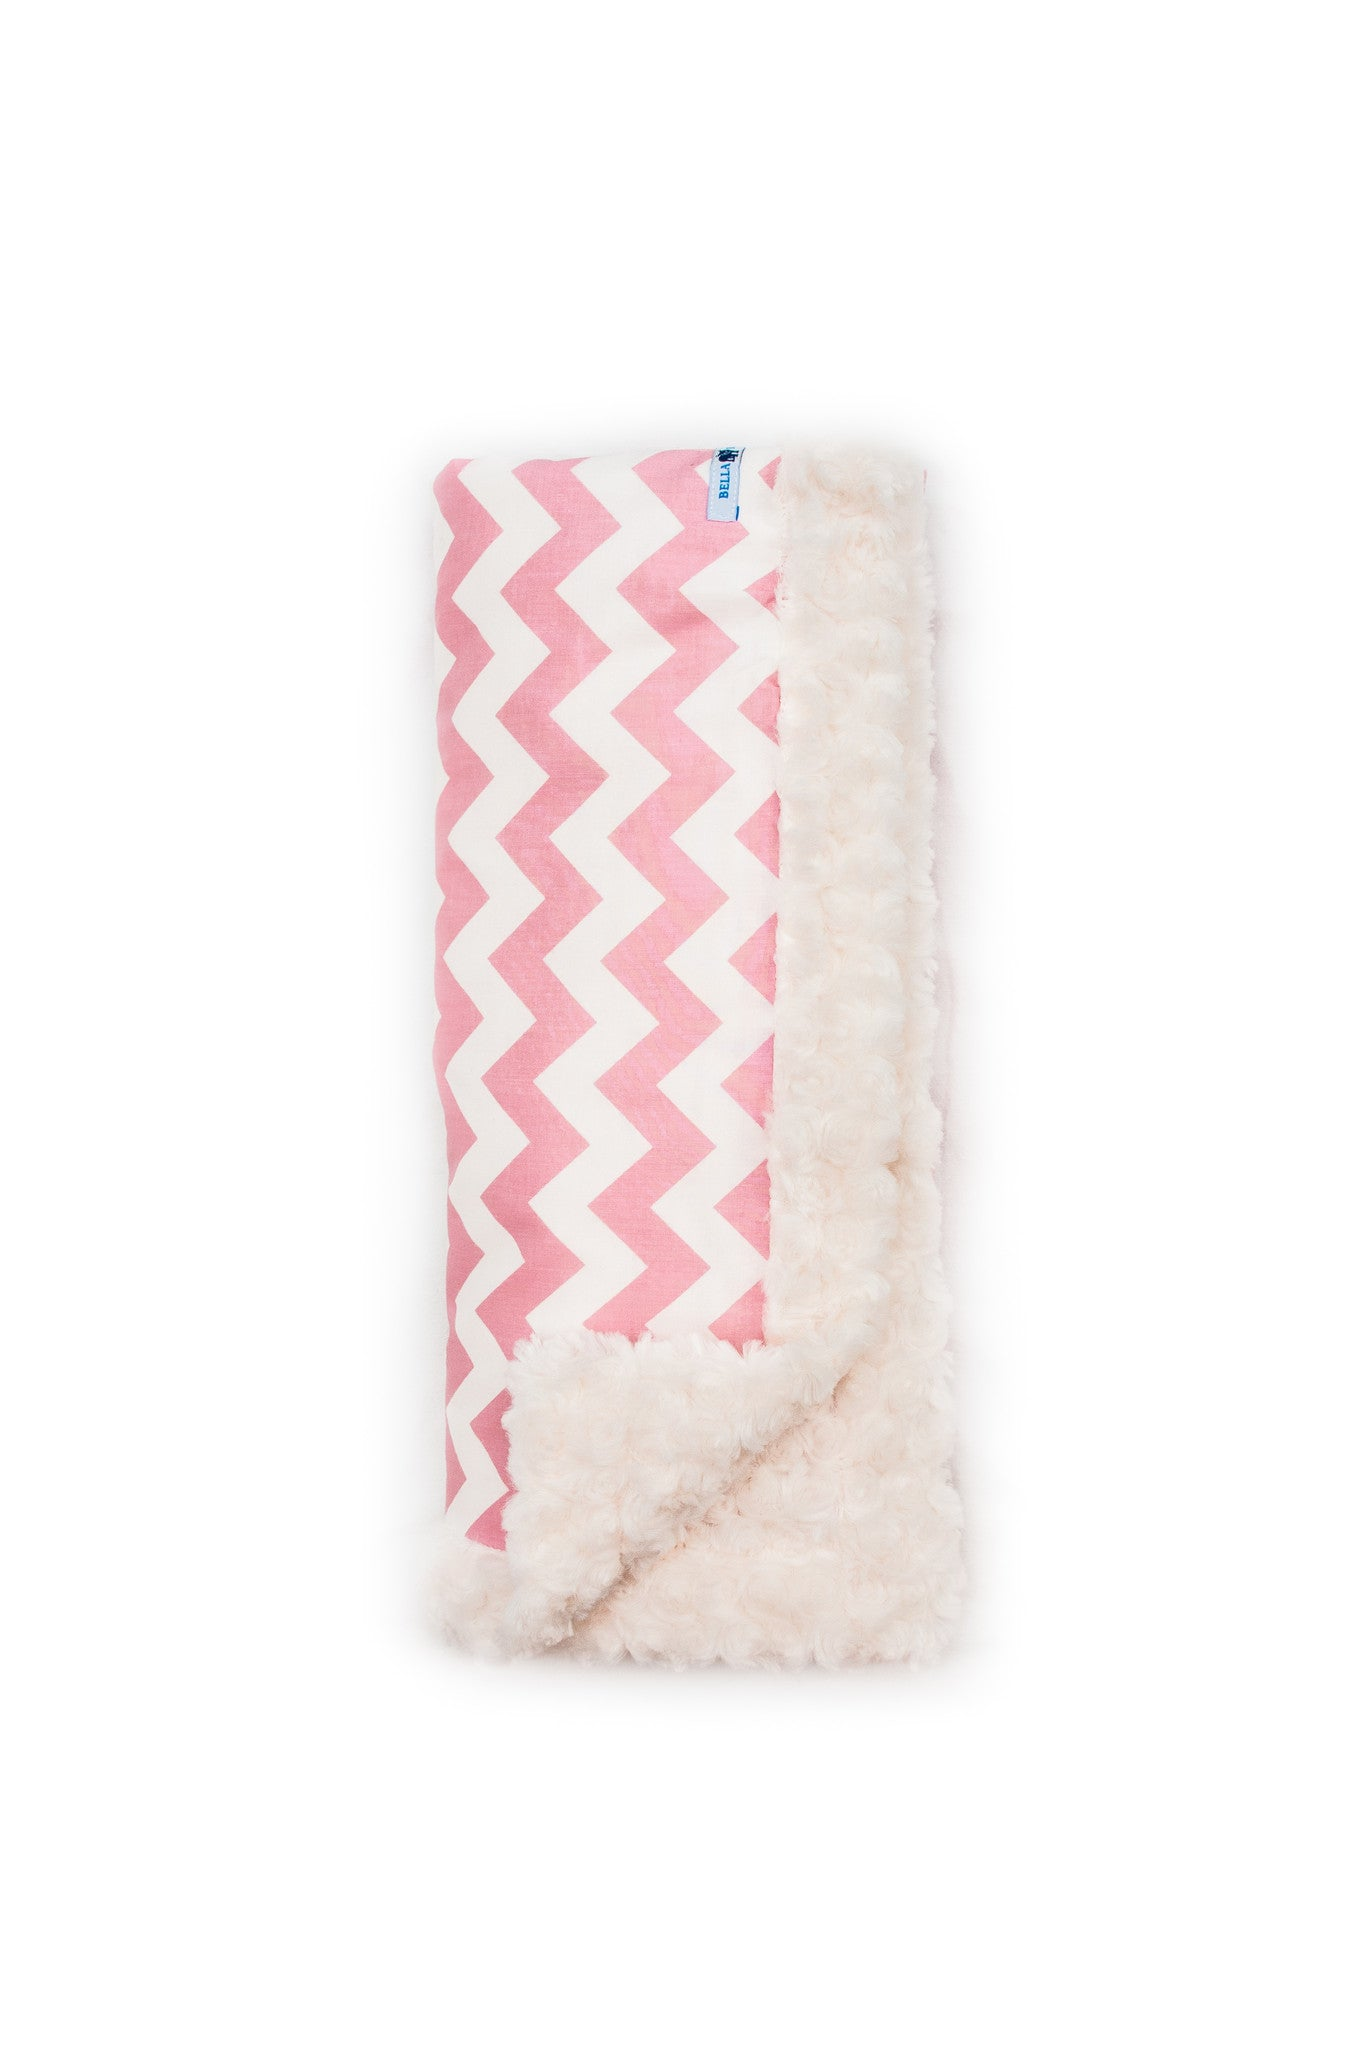 Pink Chevron luxury Blanket